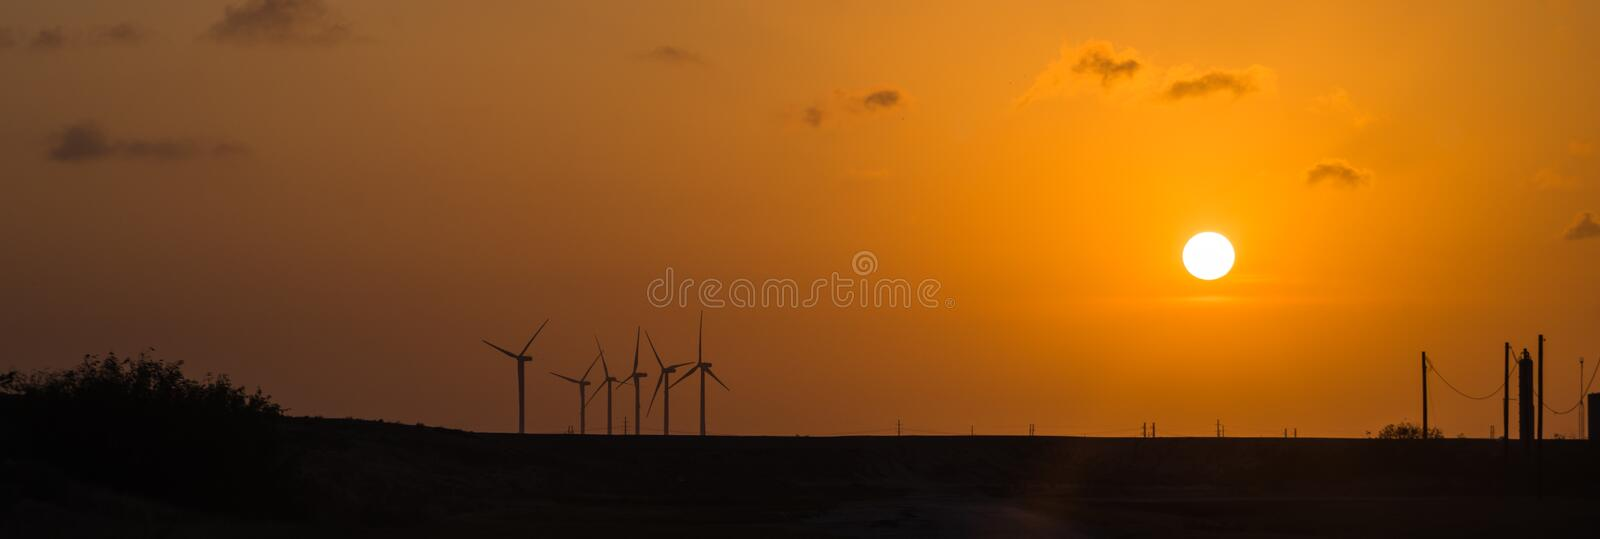 Wind turbines at orange sunset in the rural of Corpus Christi, Texas, USA stock photos